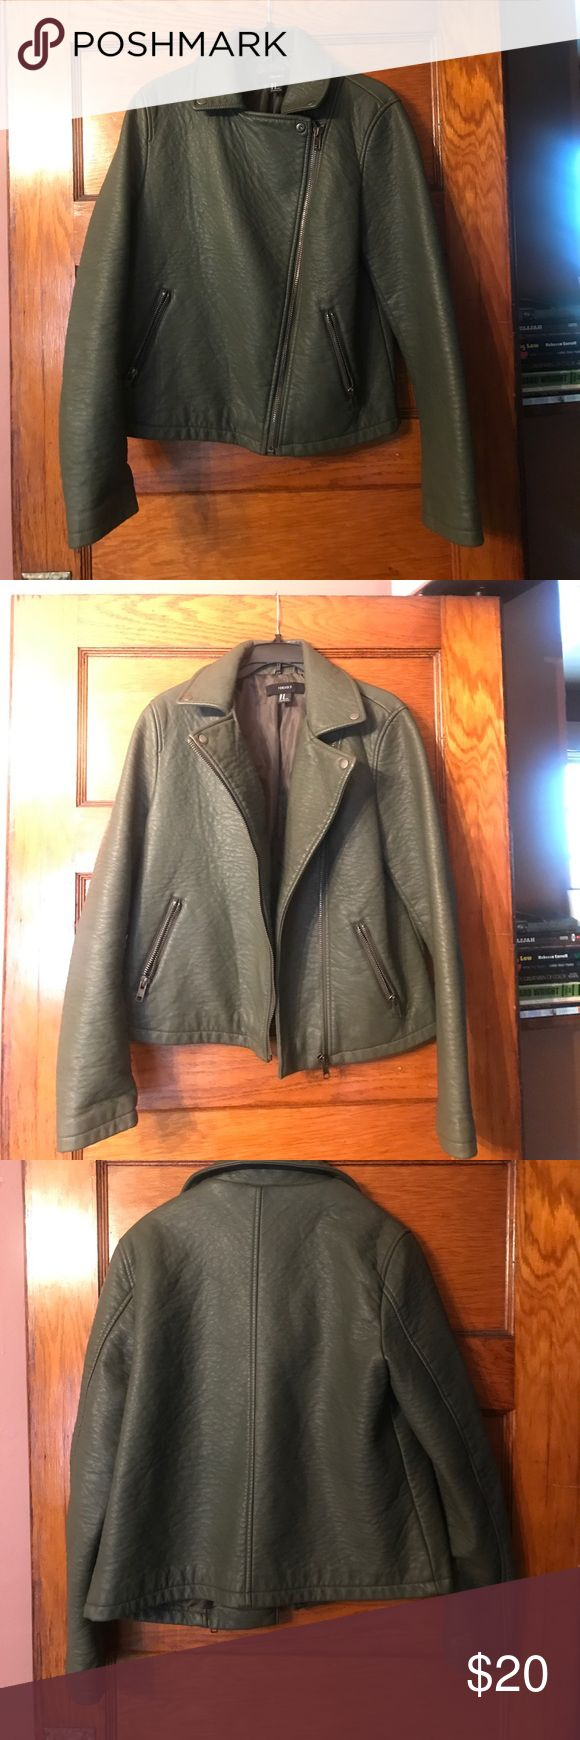 Olive green leather jacket Perfect for fall weather leather jacket Forever 21 Jackets & Coats Jean Jackets